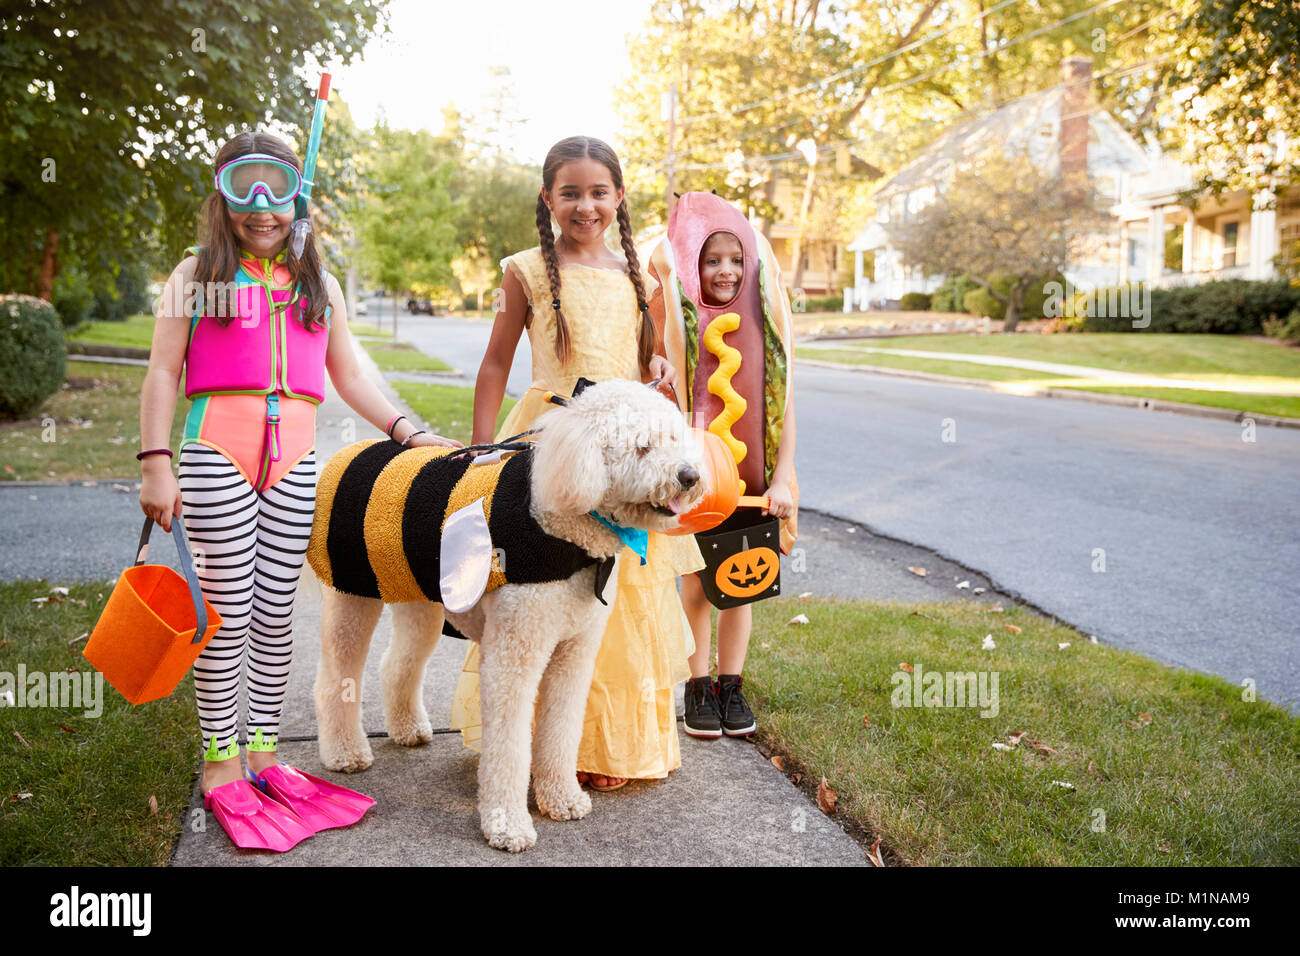 Children And Dog In Halloween Costumes For Trick Or Treating - Stock Image